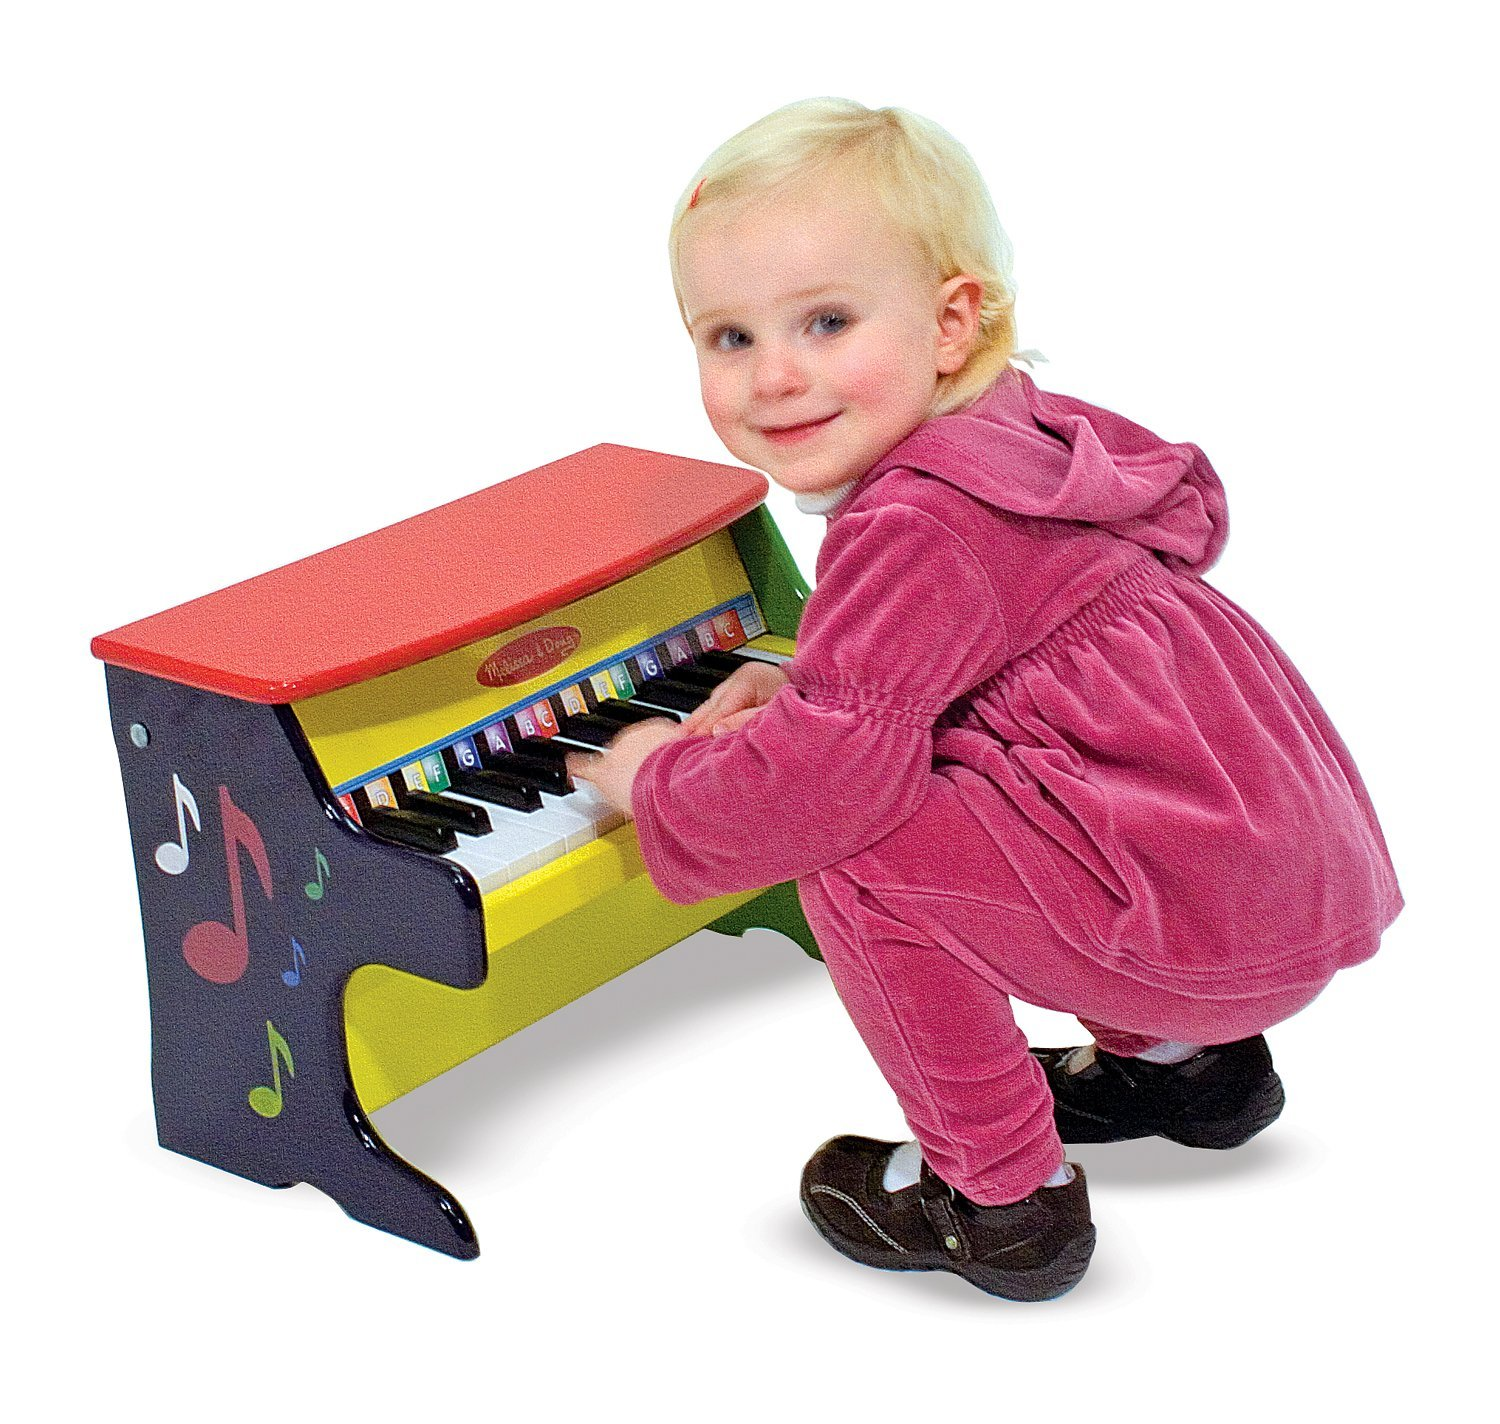 Anything That Makes Quirky Sounds On Pressing It Is A Sight Of Wonder For Young Toddlers This Mini Keyboard One The Amazing Birthday Gift Idea